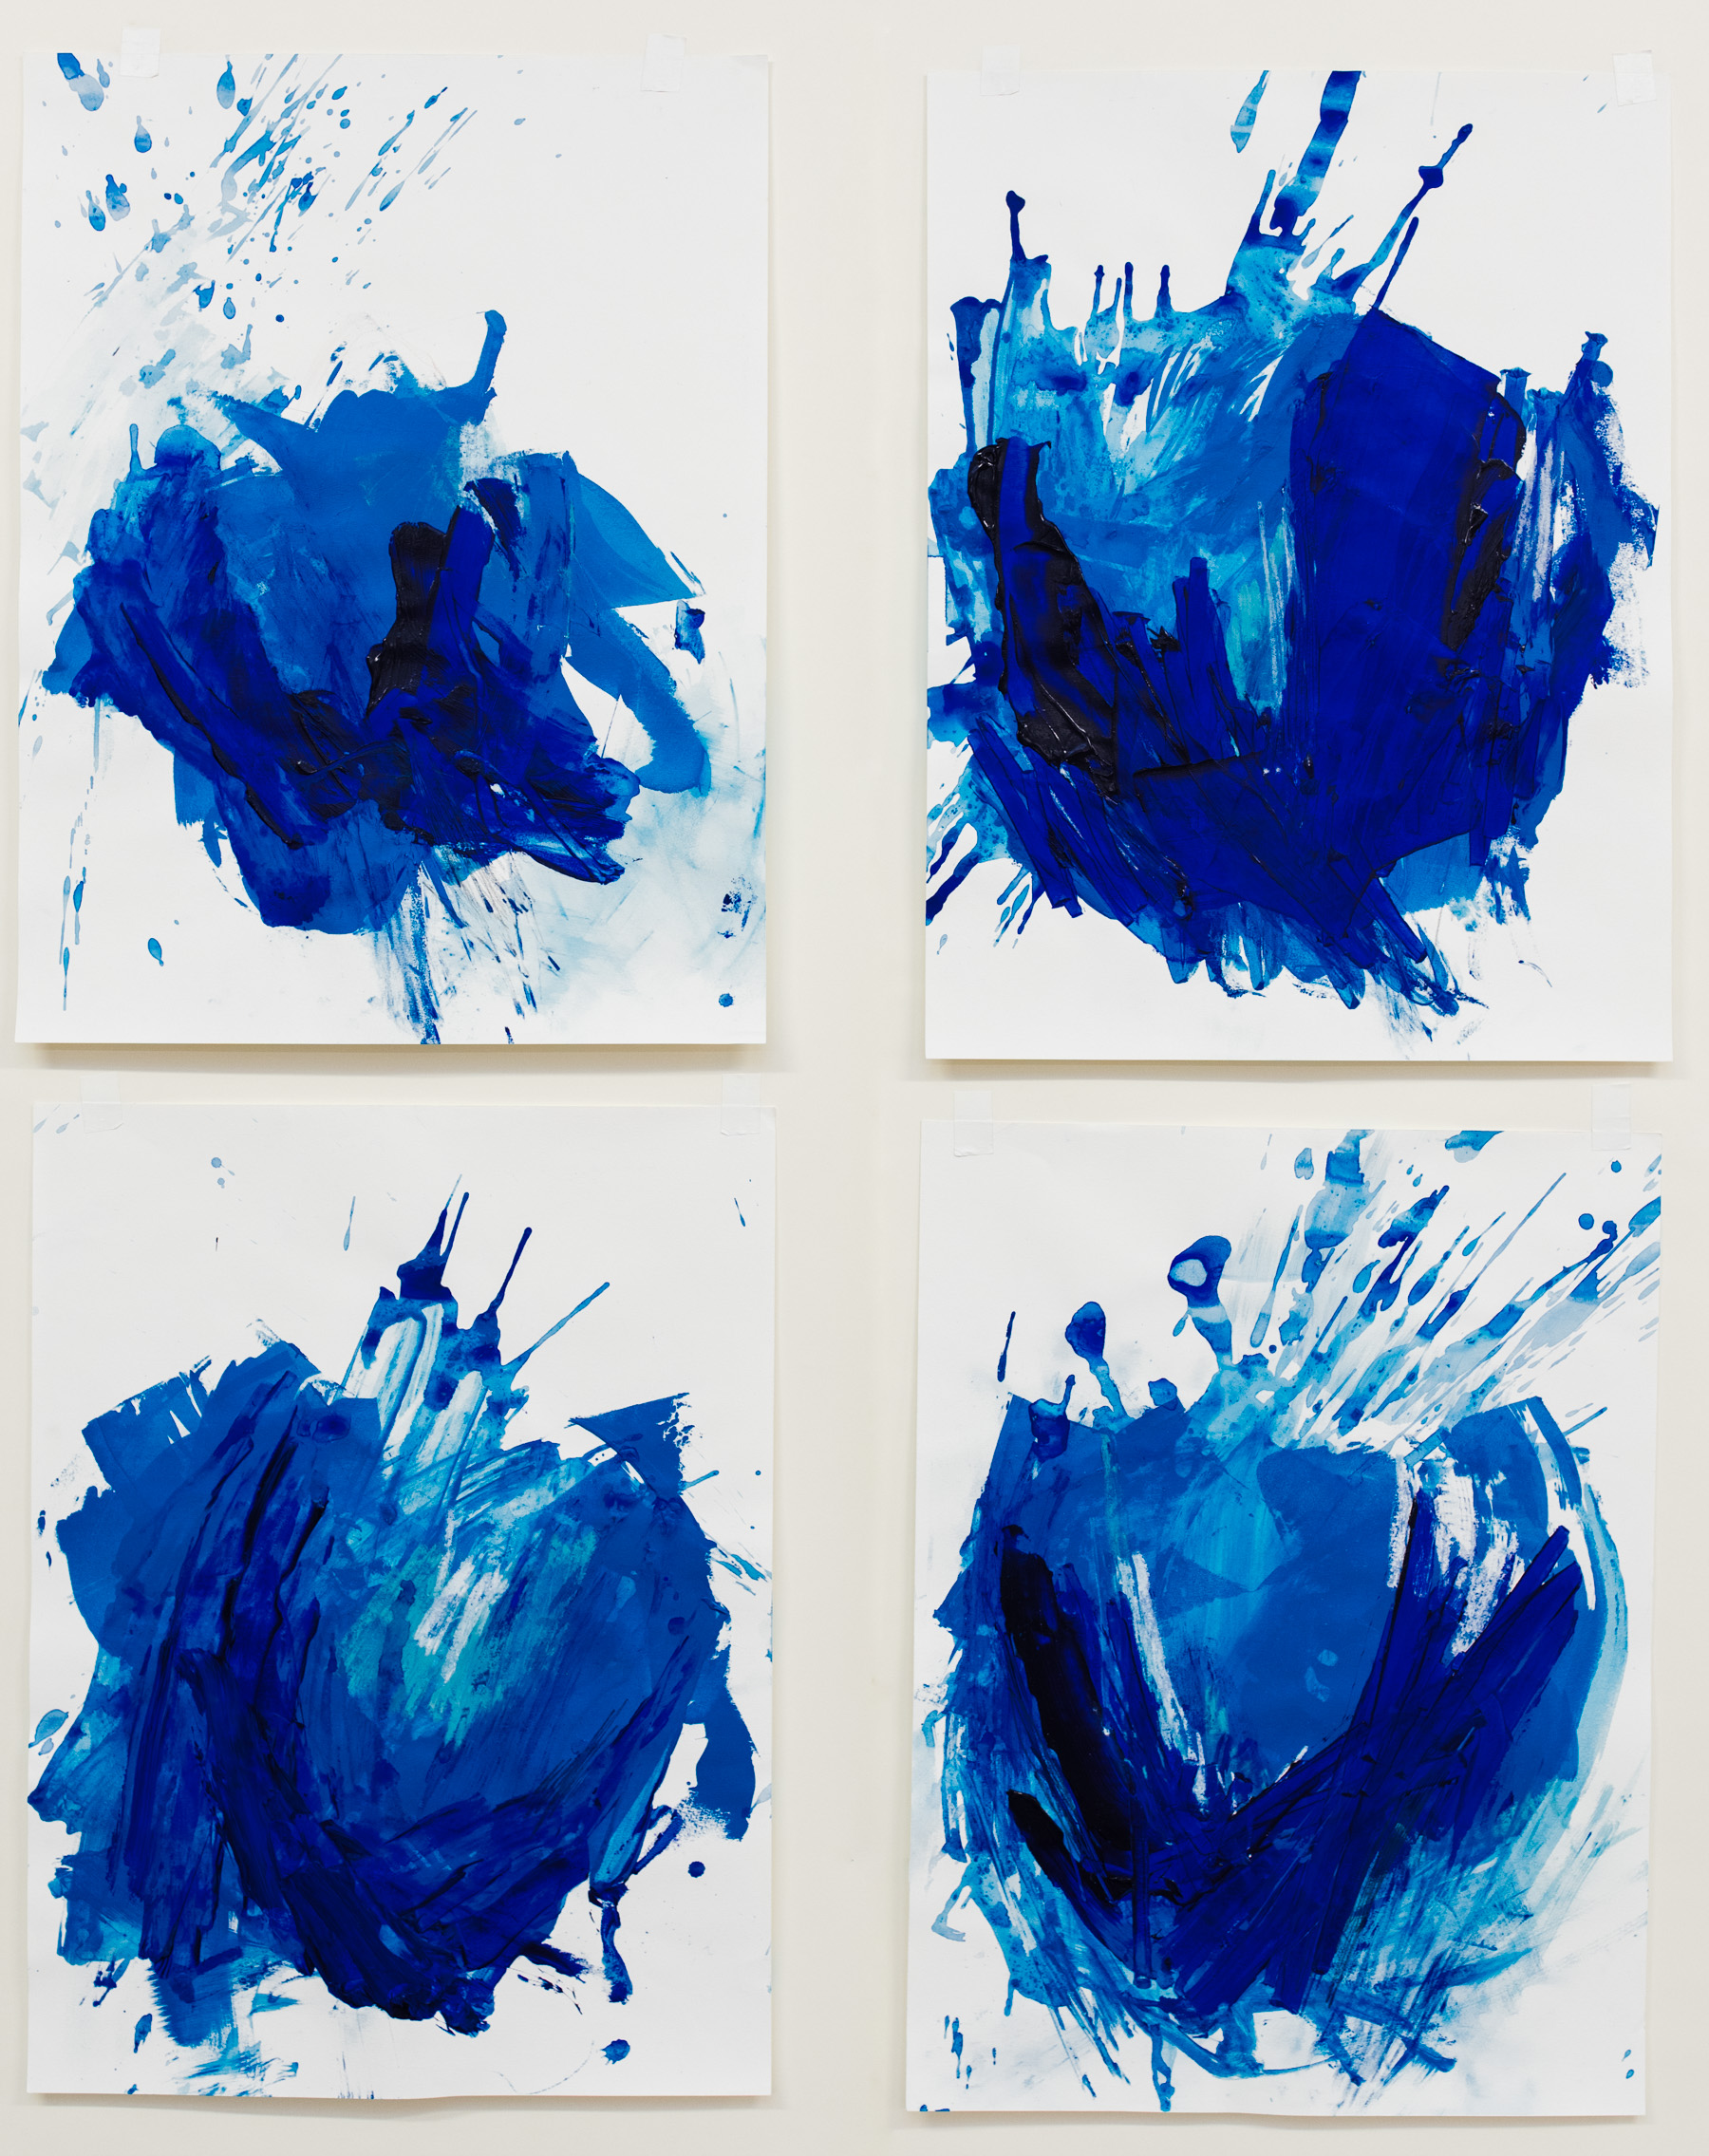 """Upheaval #1-4 , 18""""x24"""" each, acrylic on paper, 2018, available"""